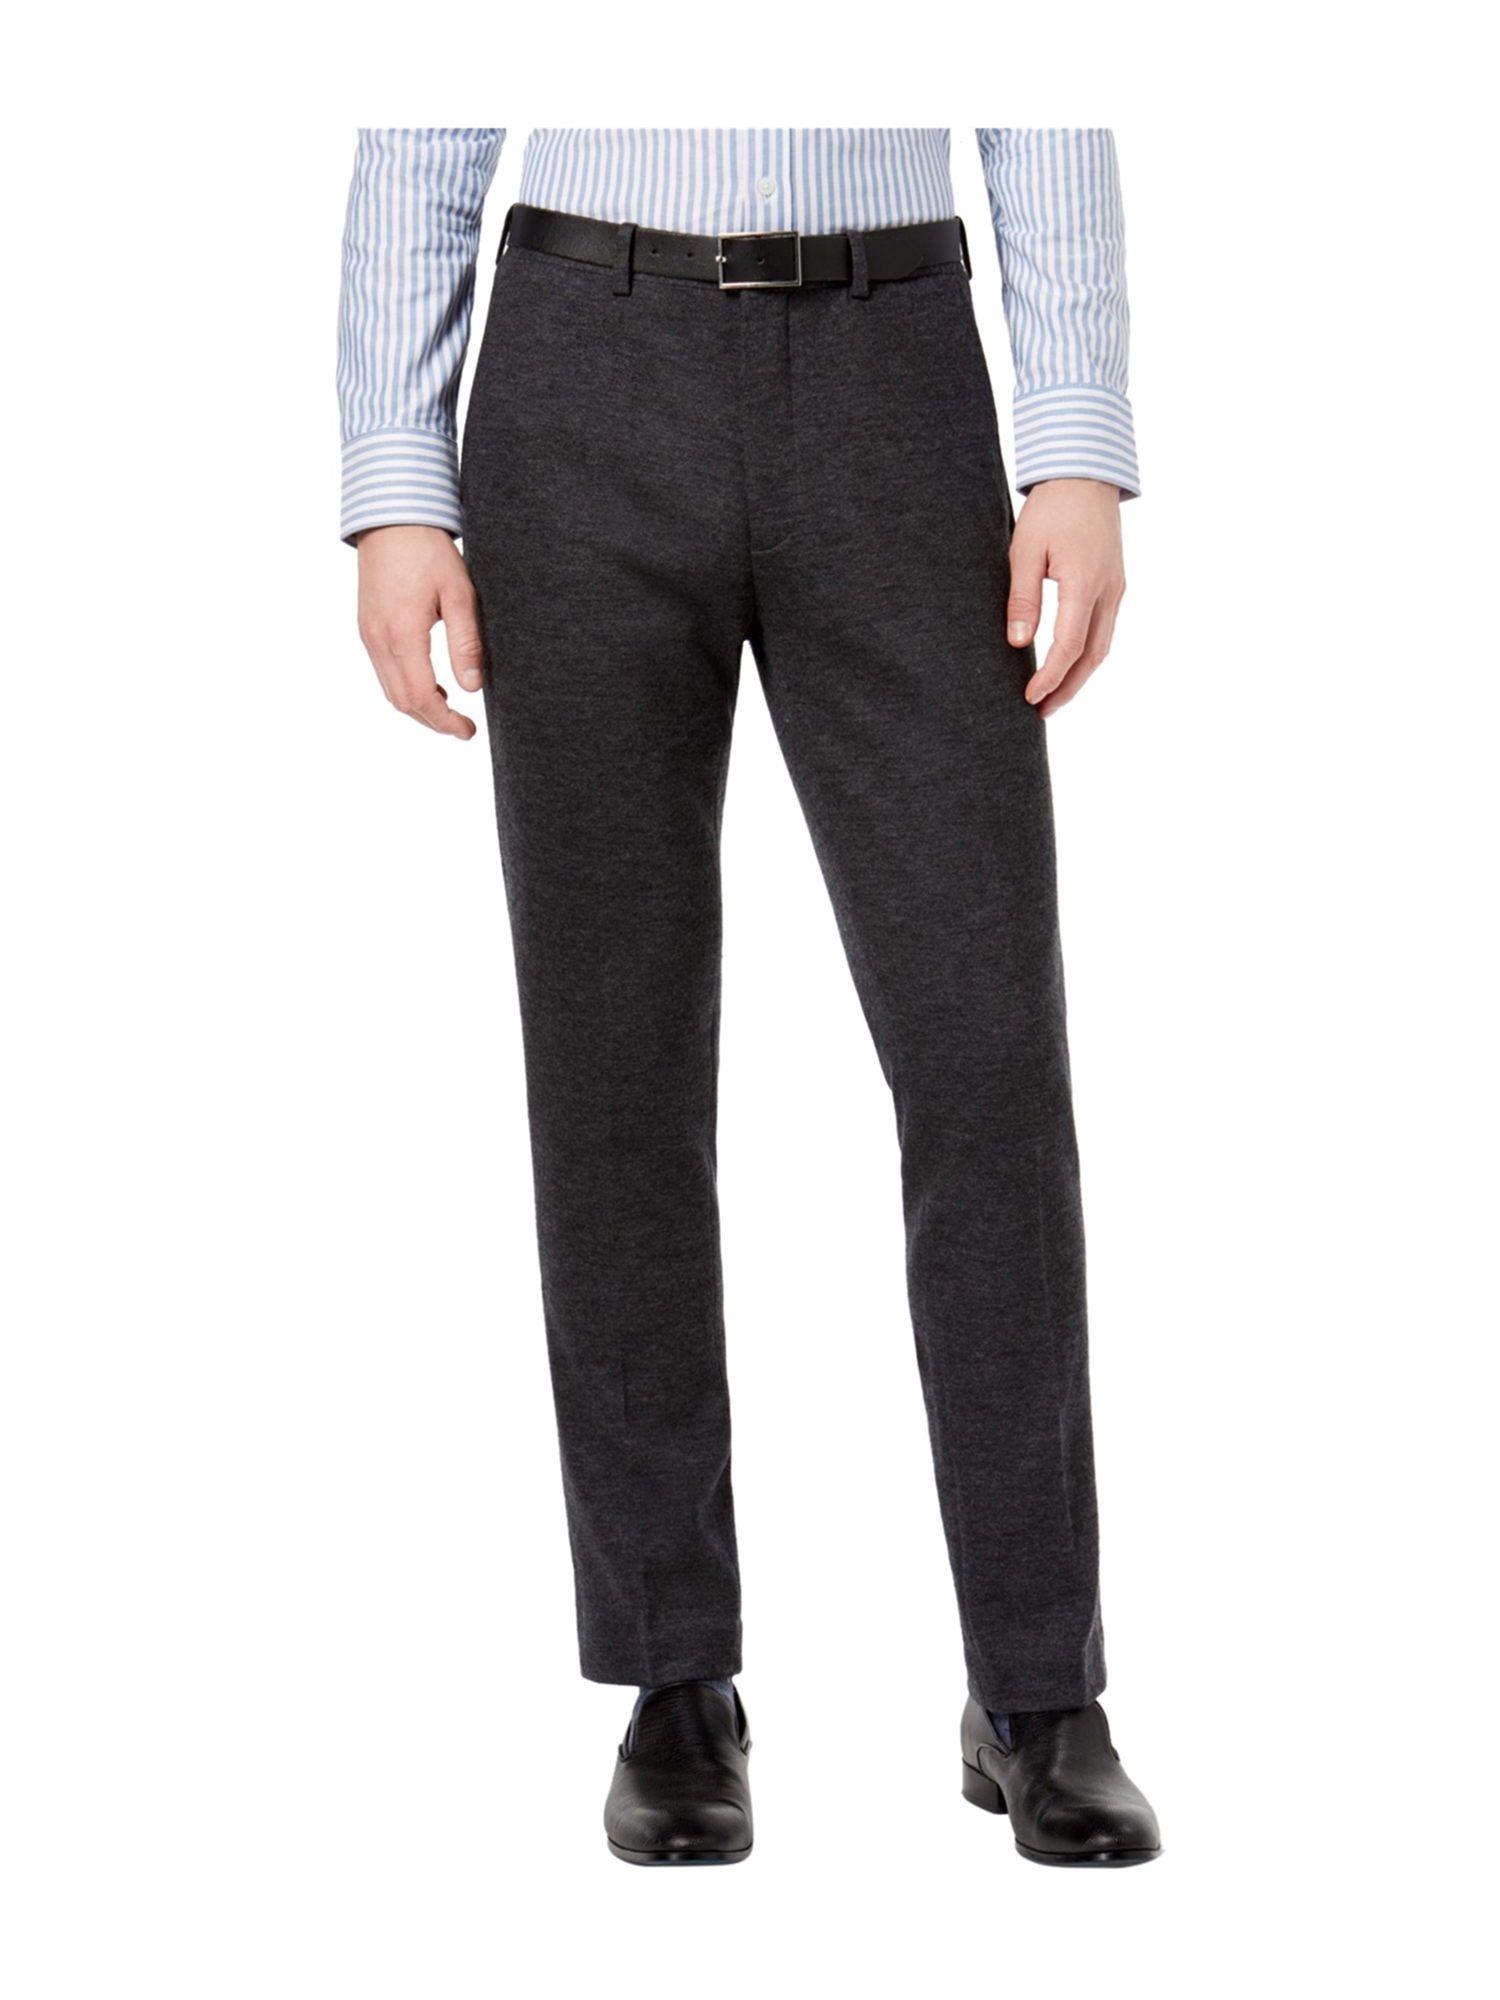 bar III Mens Knit Dress Slacks